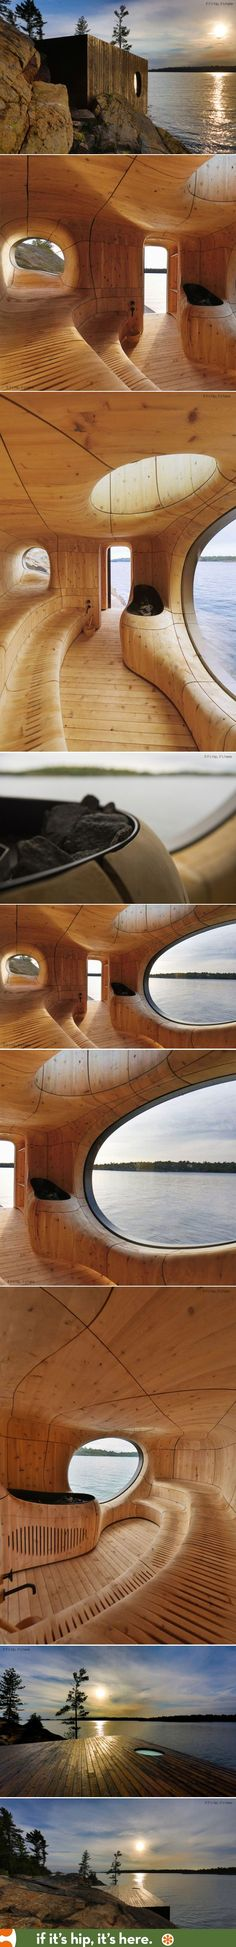 cool The Grotto Sauna is a prefab sauna designed and fabricated using the latest 3D t...